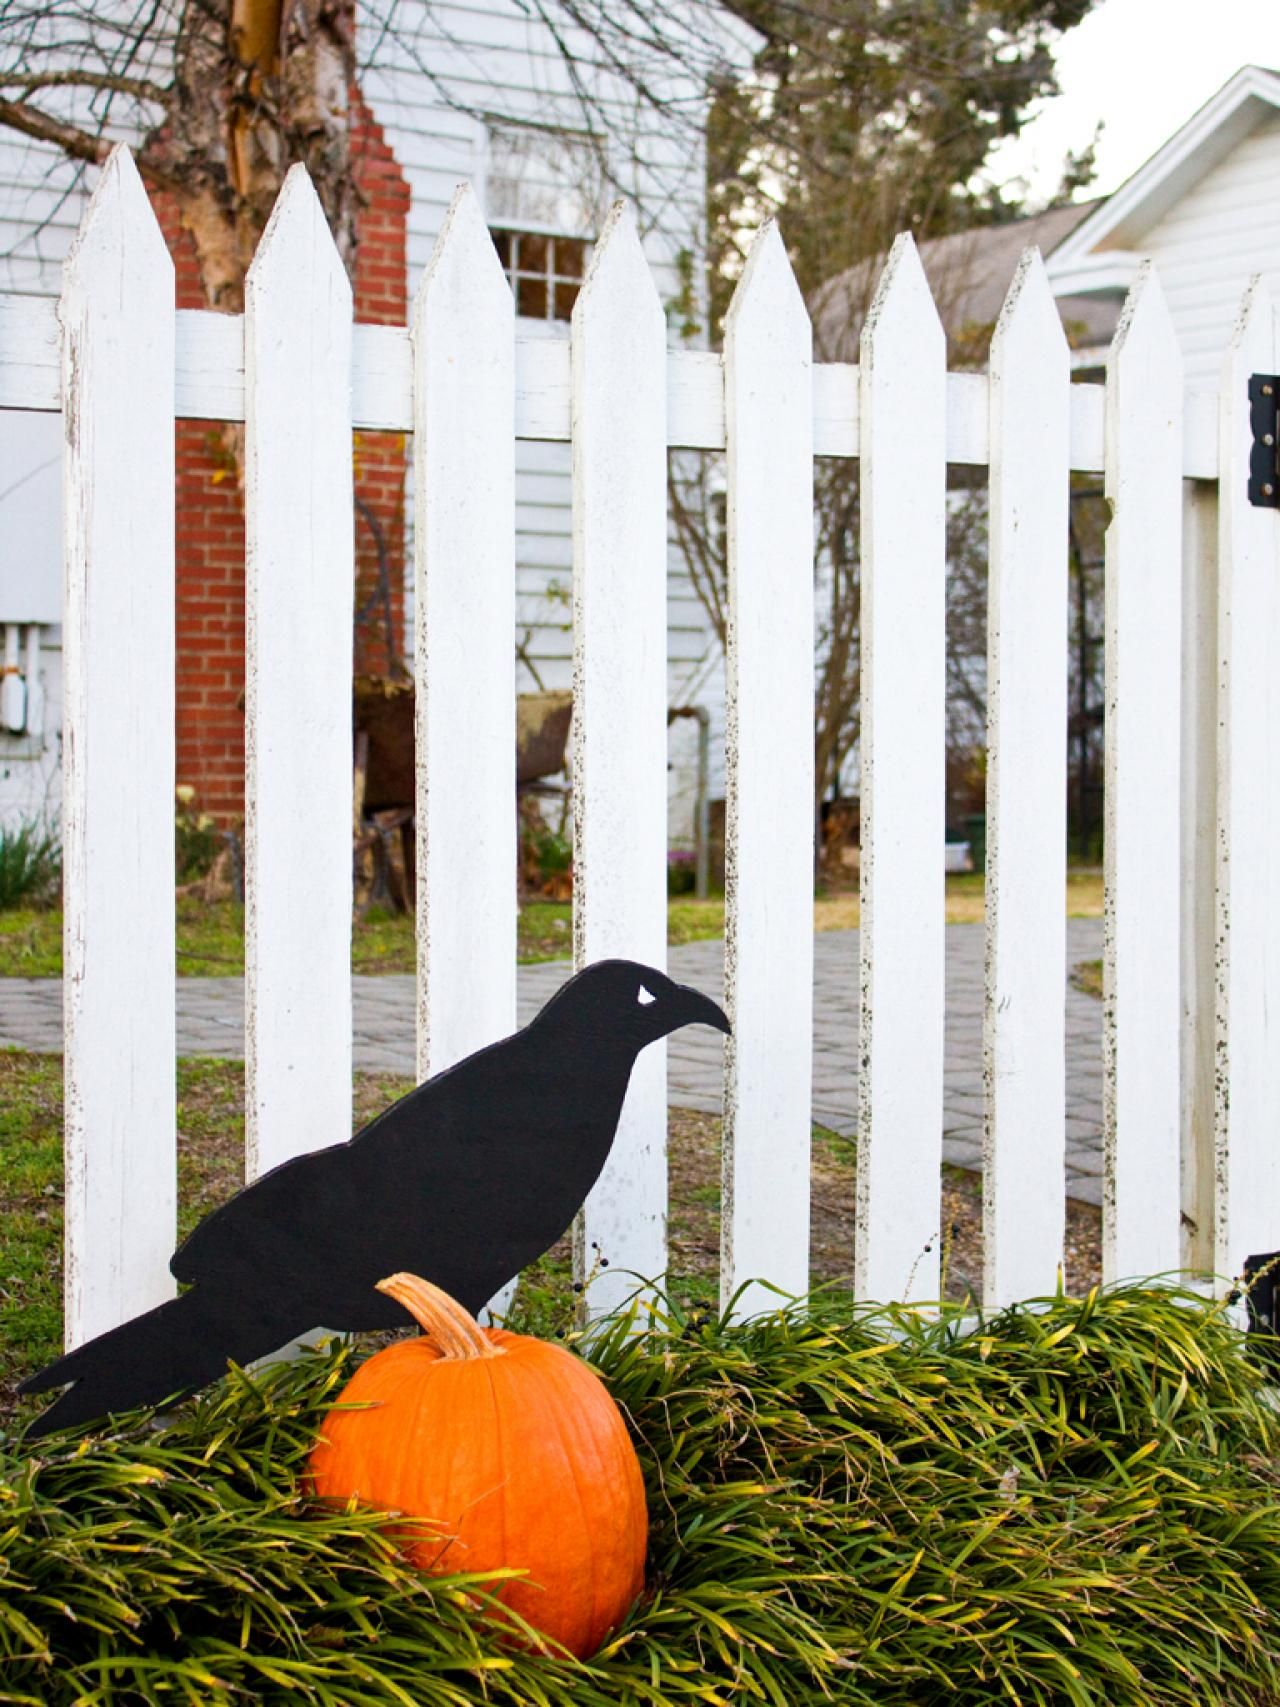 60 DIY Halloween Decorations  Decorating Ideas Halloween ideas - Homemade Halloween Decorations